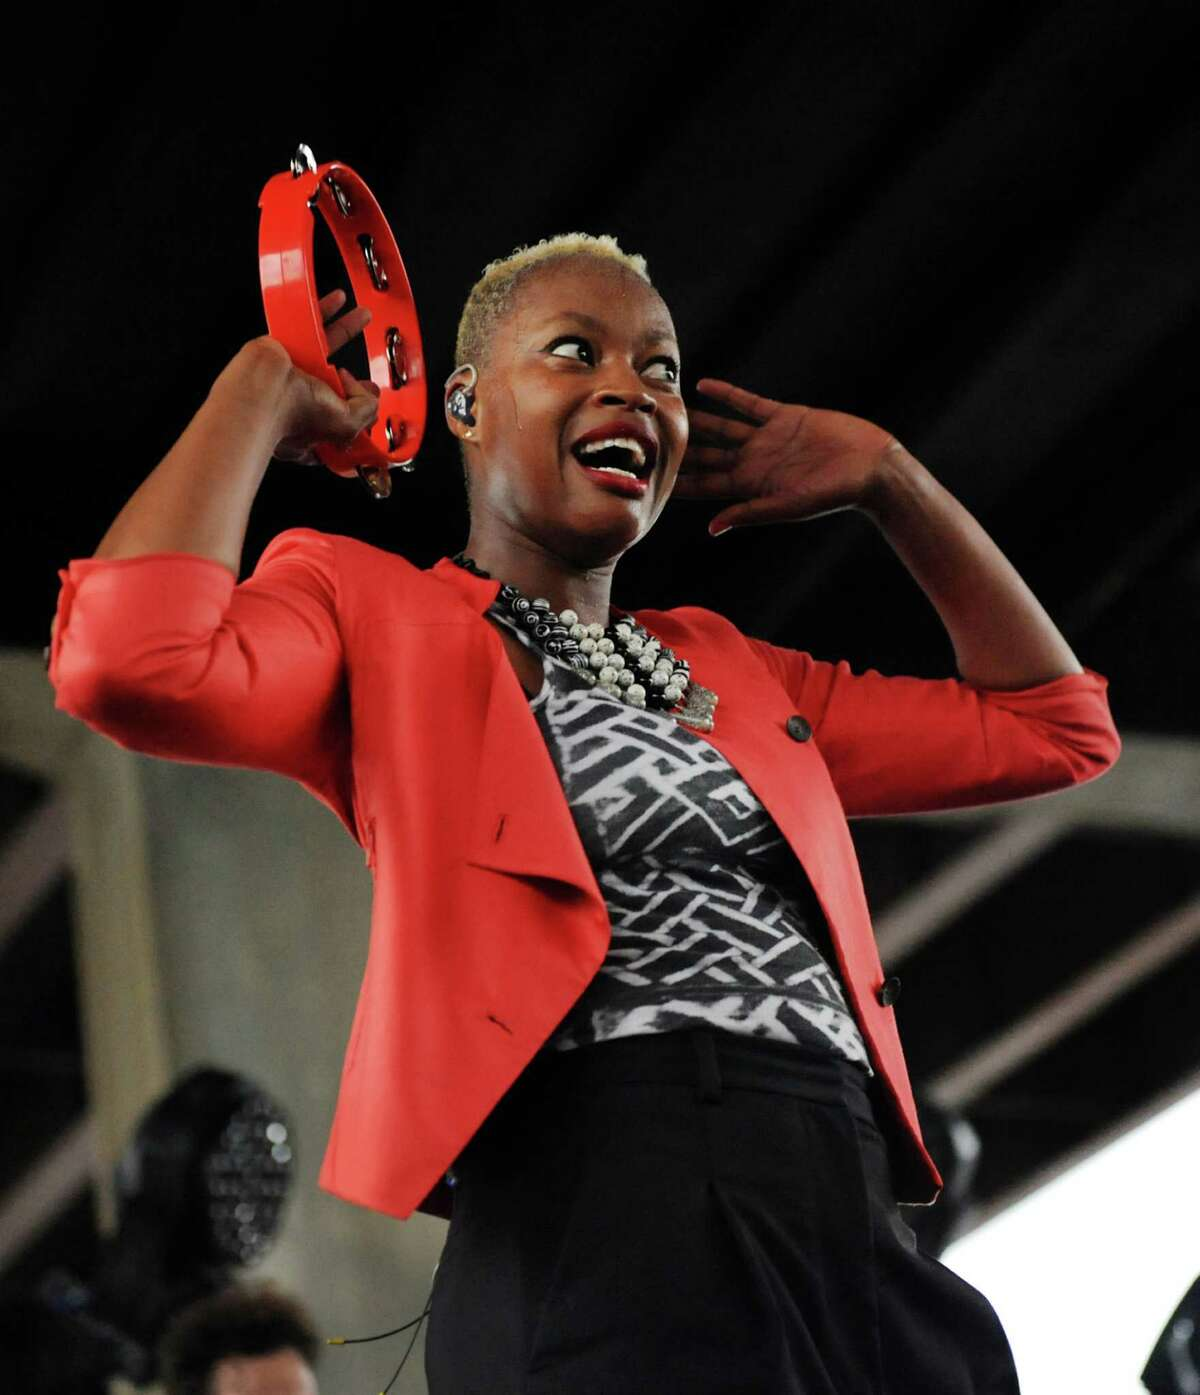 Singer Noelle Scaggs encourages the fans to cheer as Fitz and the Tantrums performs during Alive at Five on Thursday, June 12, 2014, at the Corning Preserve Boat Launch in Albany, N.Y. (Cindy Schultz / Times Union)